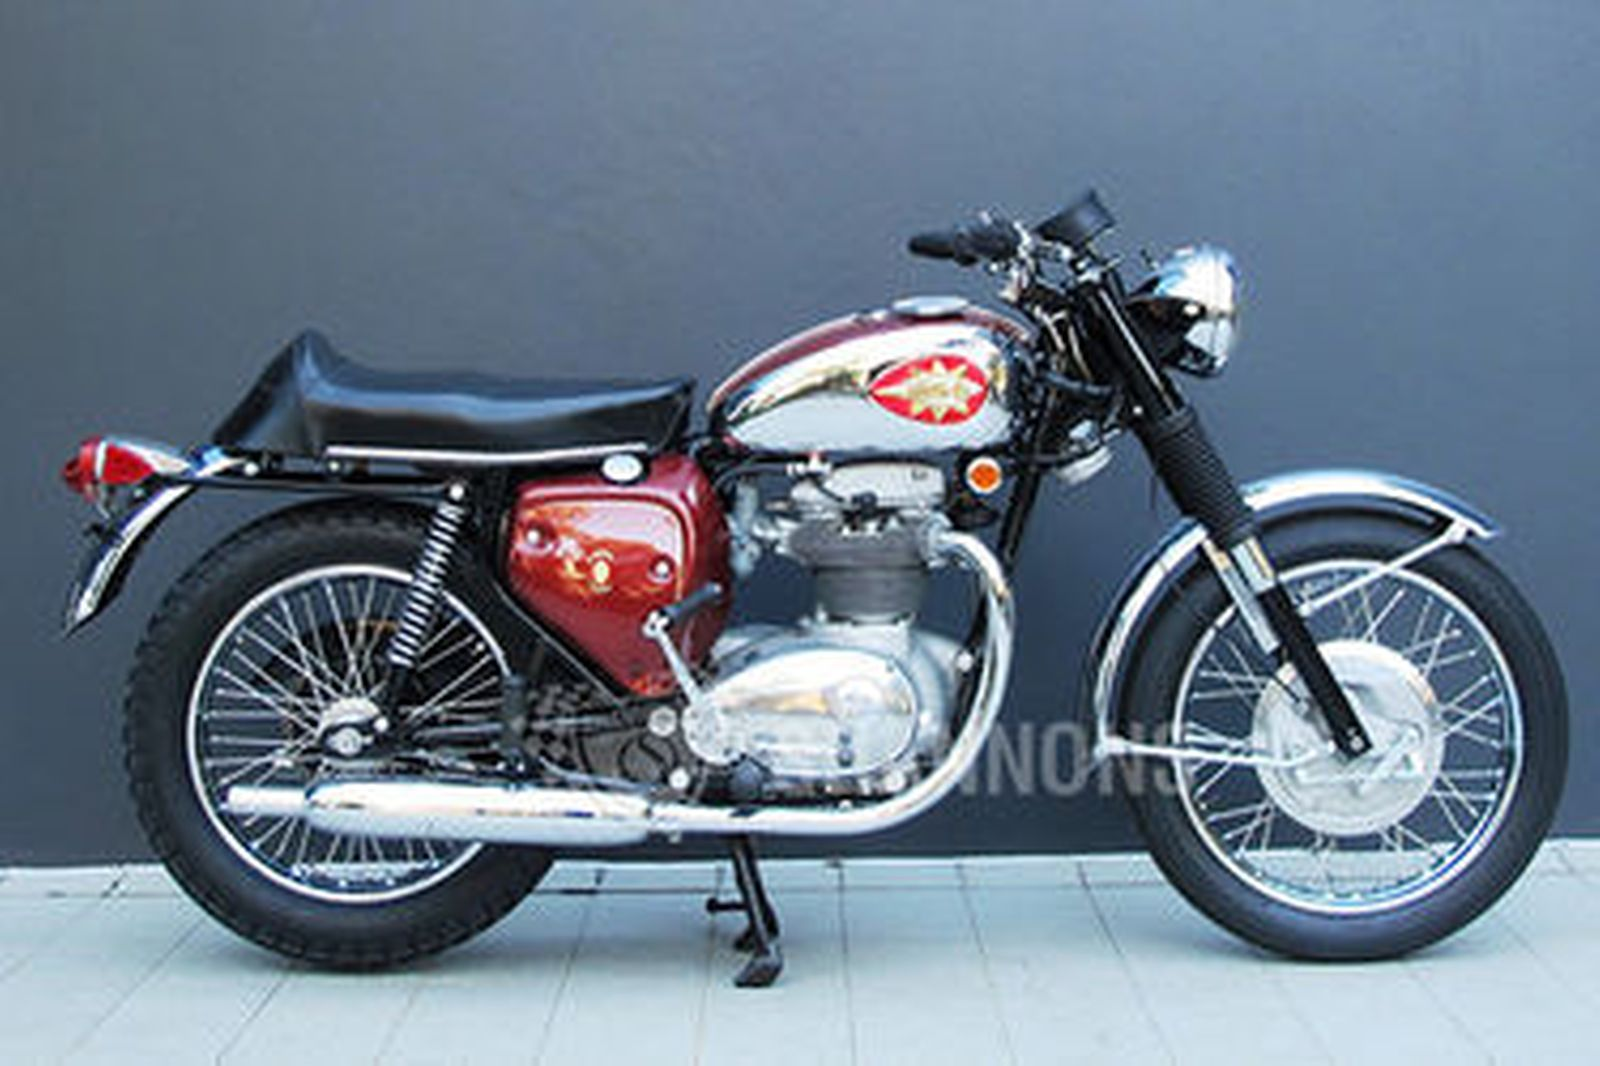 Sold Bsa A65 Thunderbolt 650cc Motorcycle Auctions Lot